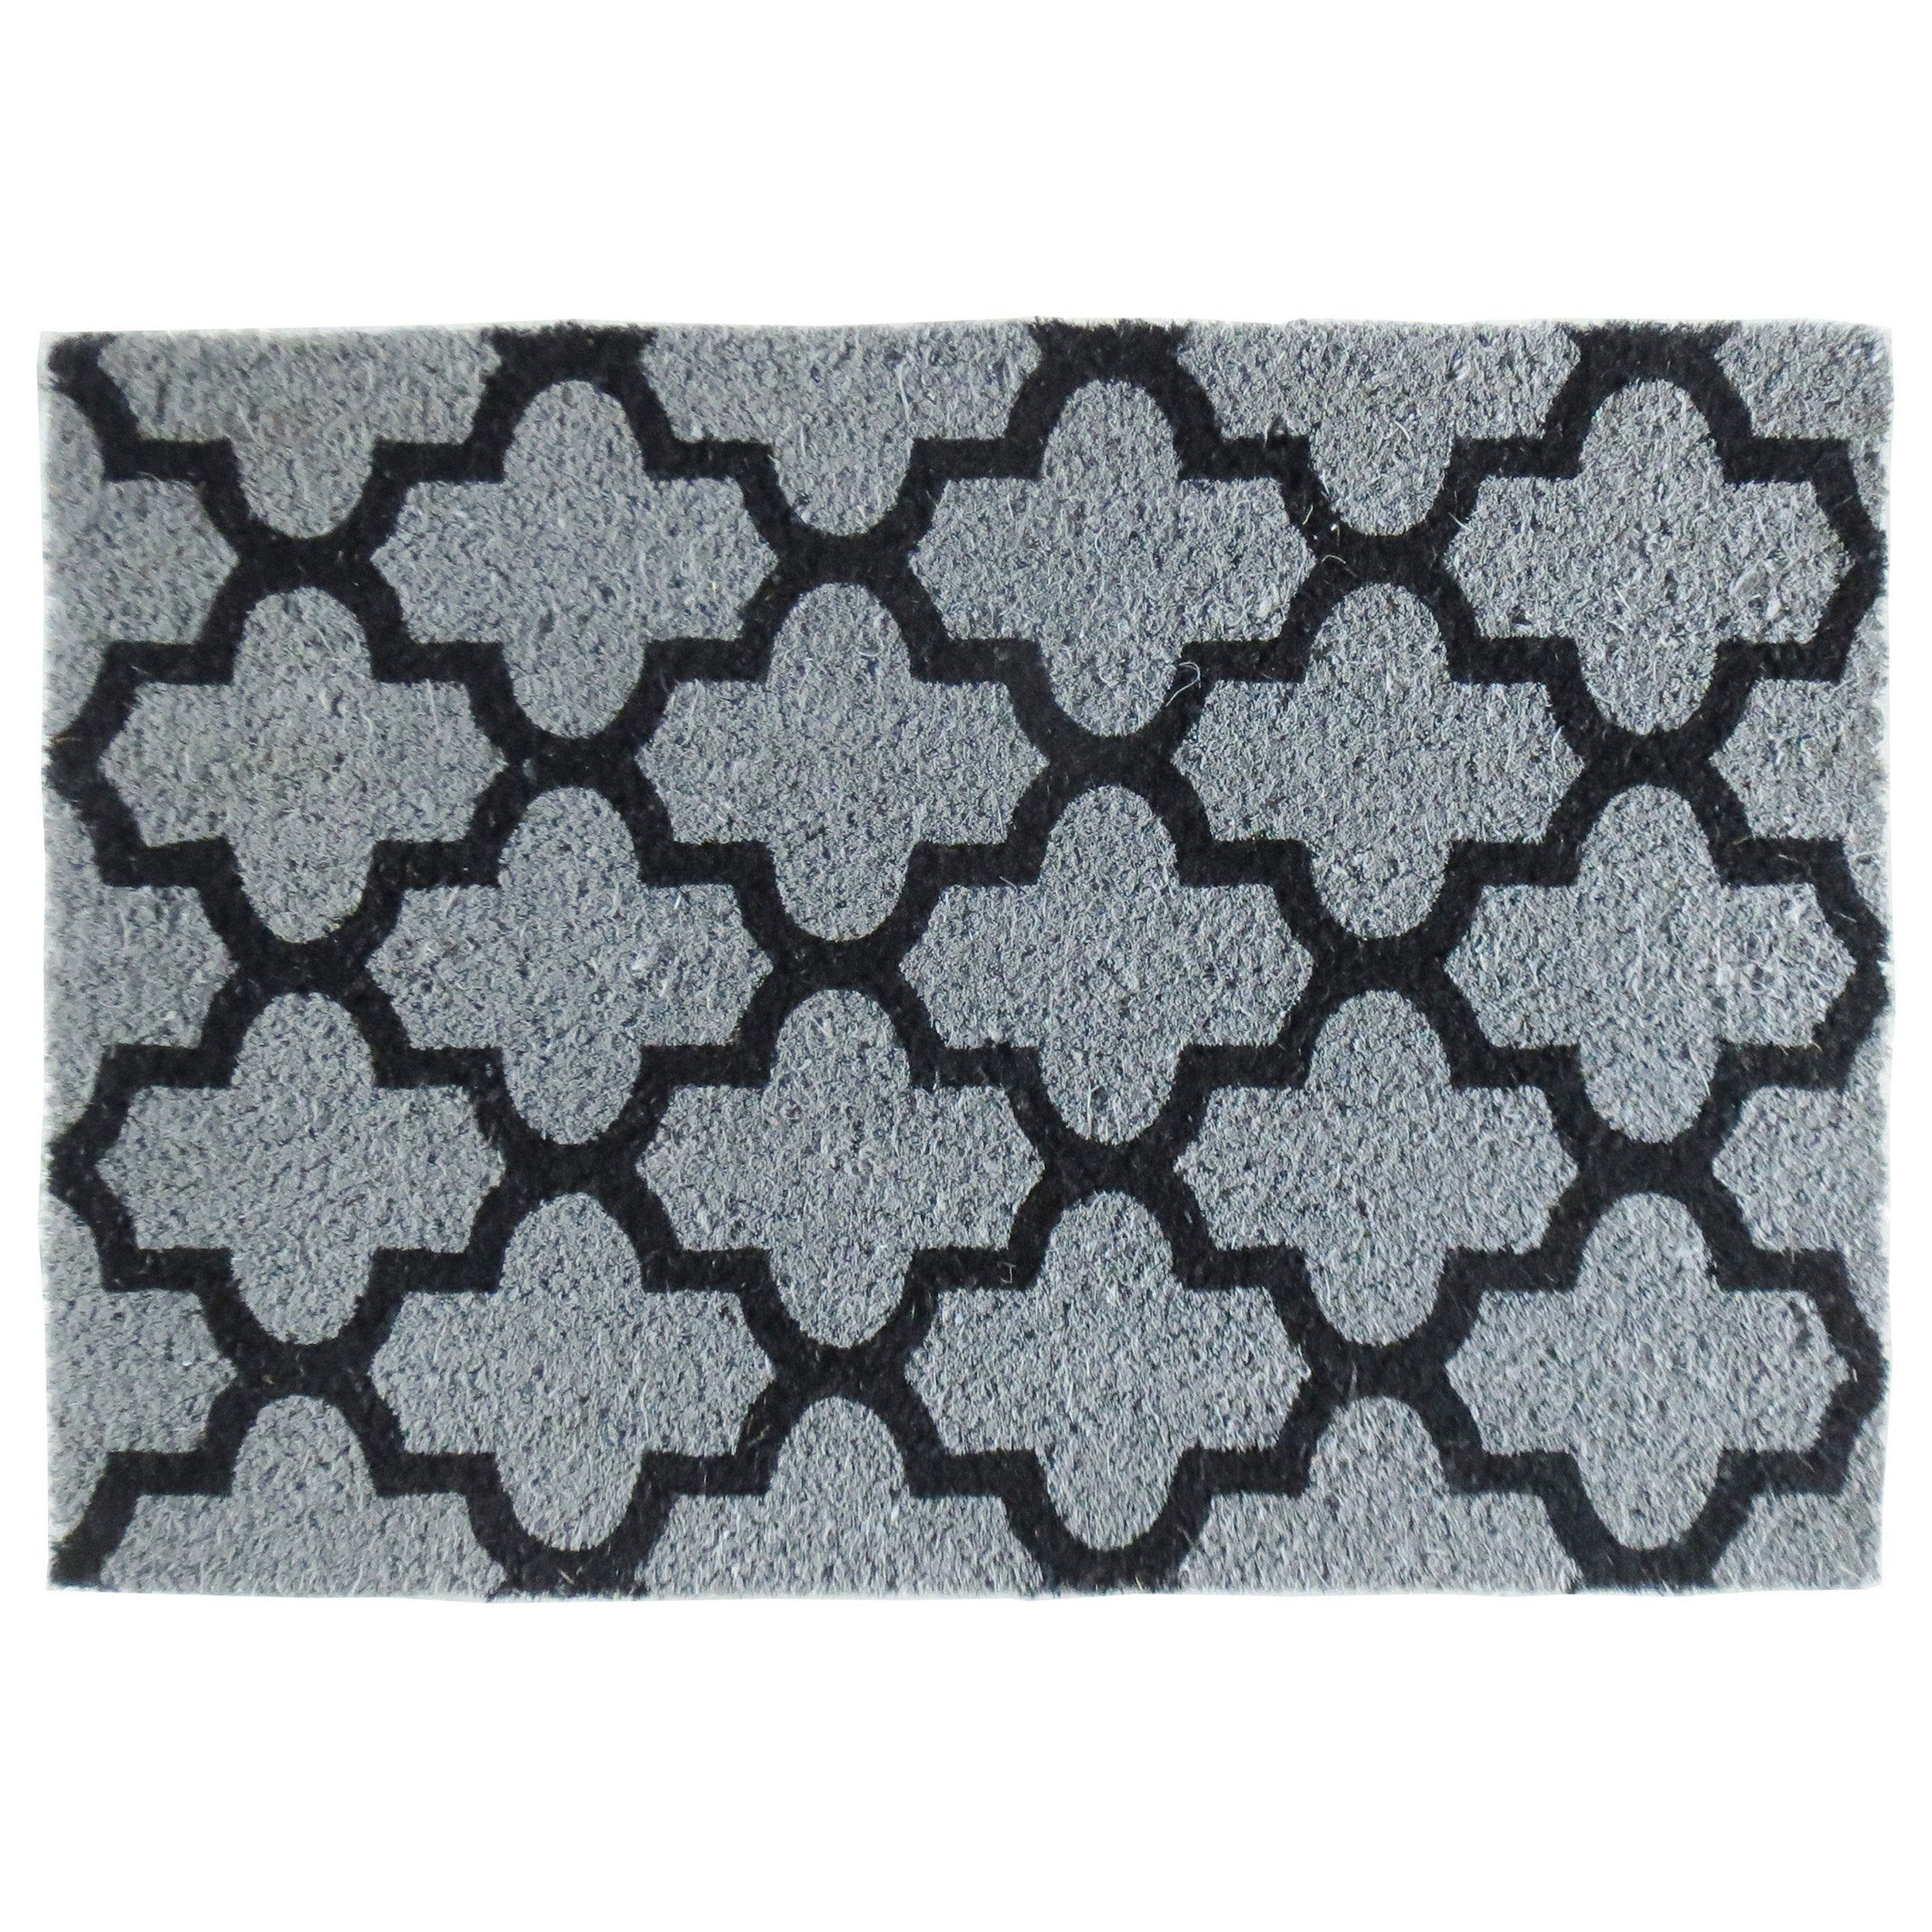 Paillasson Coco Gris L 40 Cm X L 60 Cm X Ep 15 Mm Design Ciment No Name Paillasson Ciment Et Design